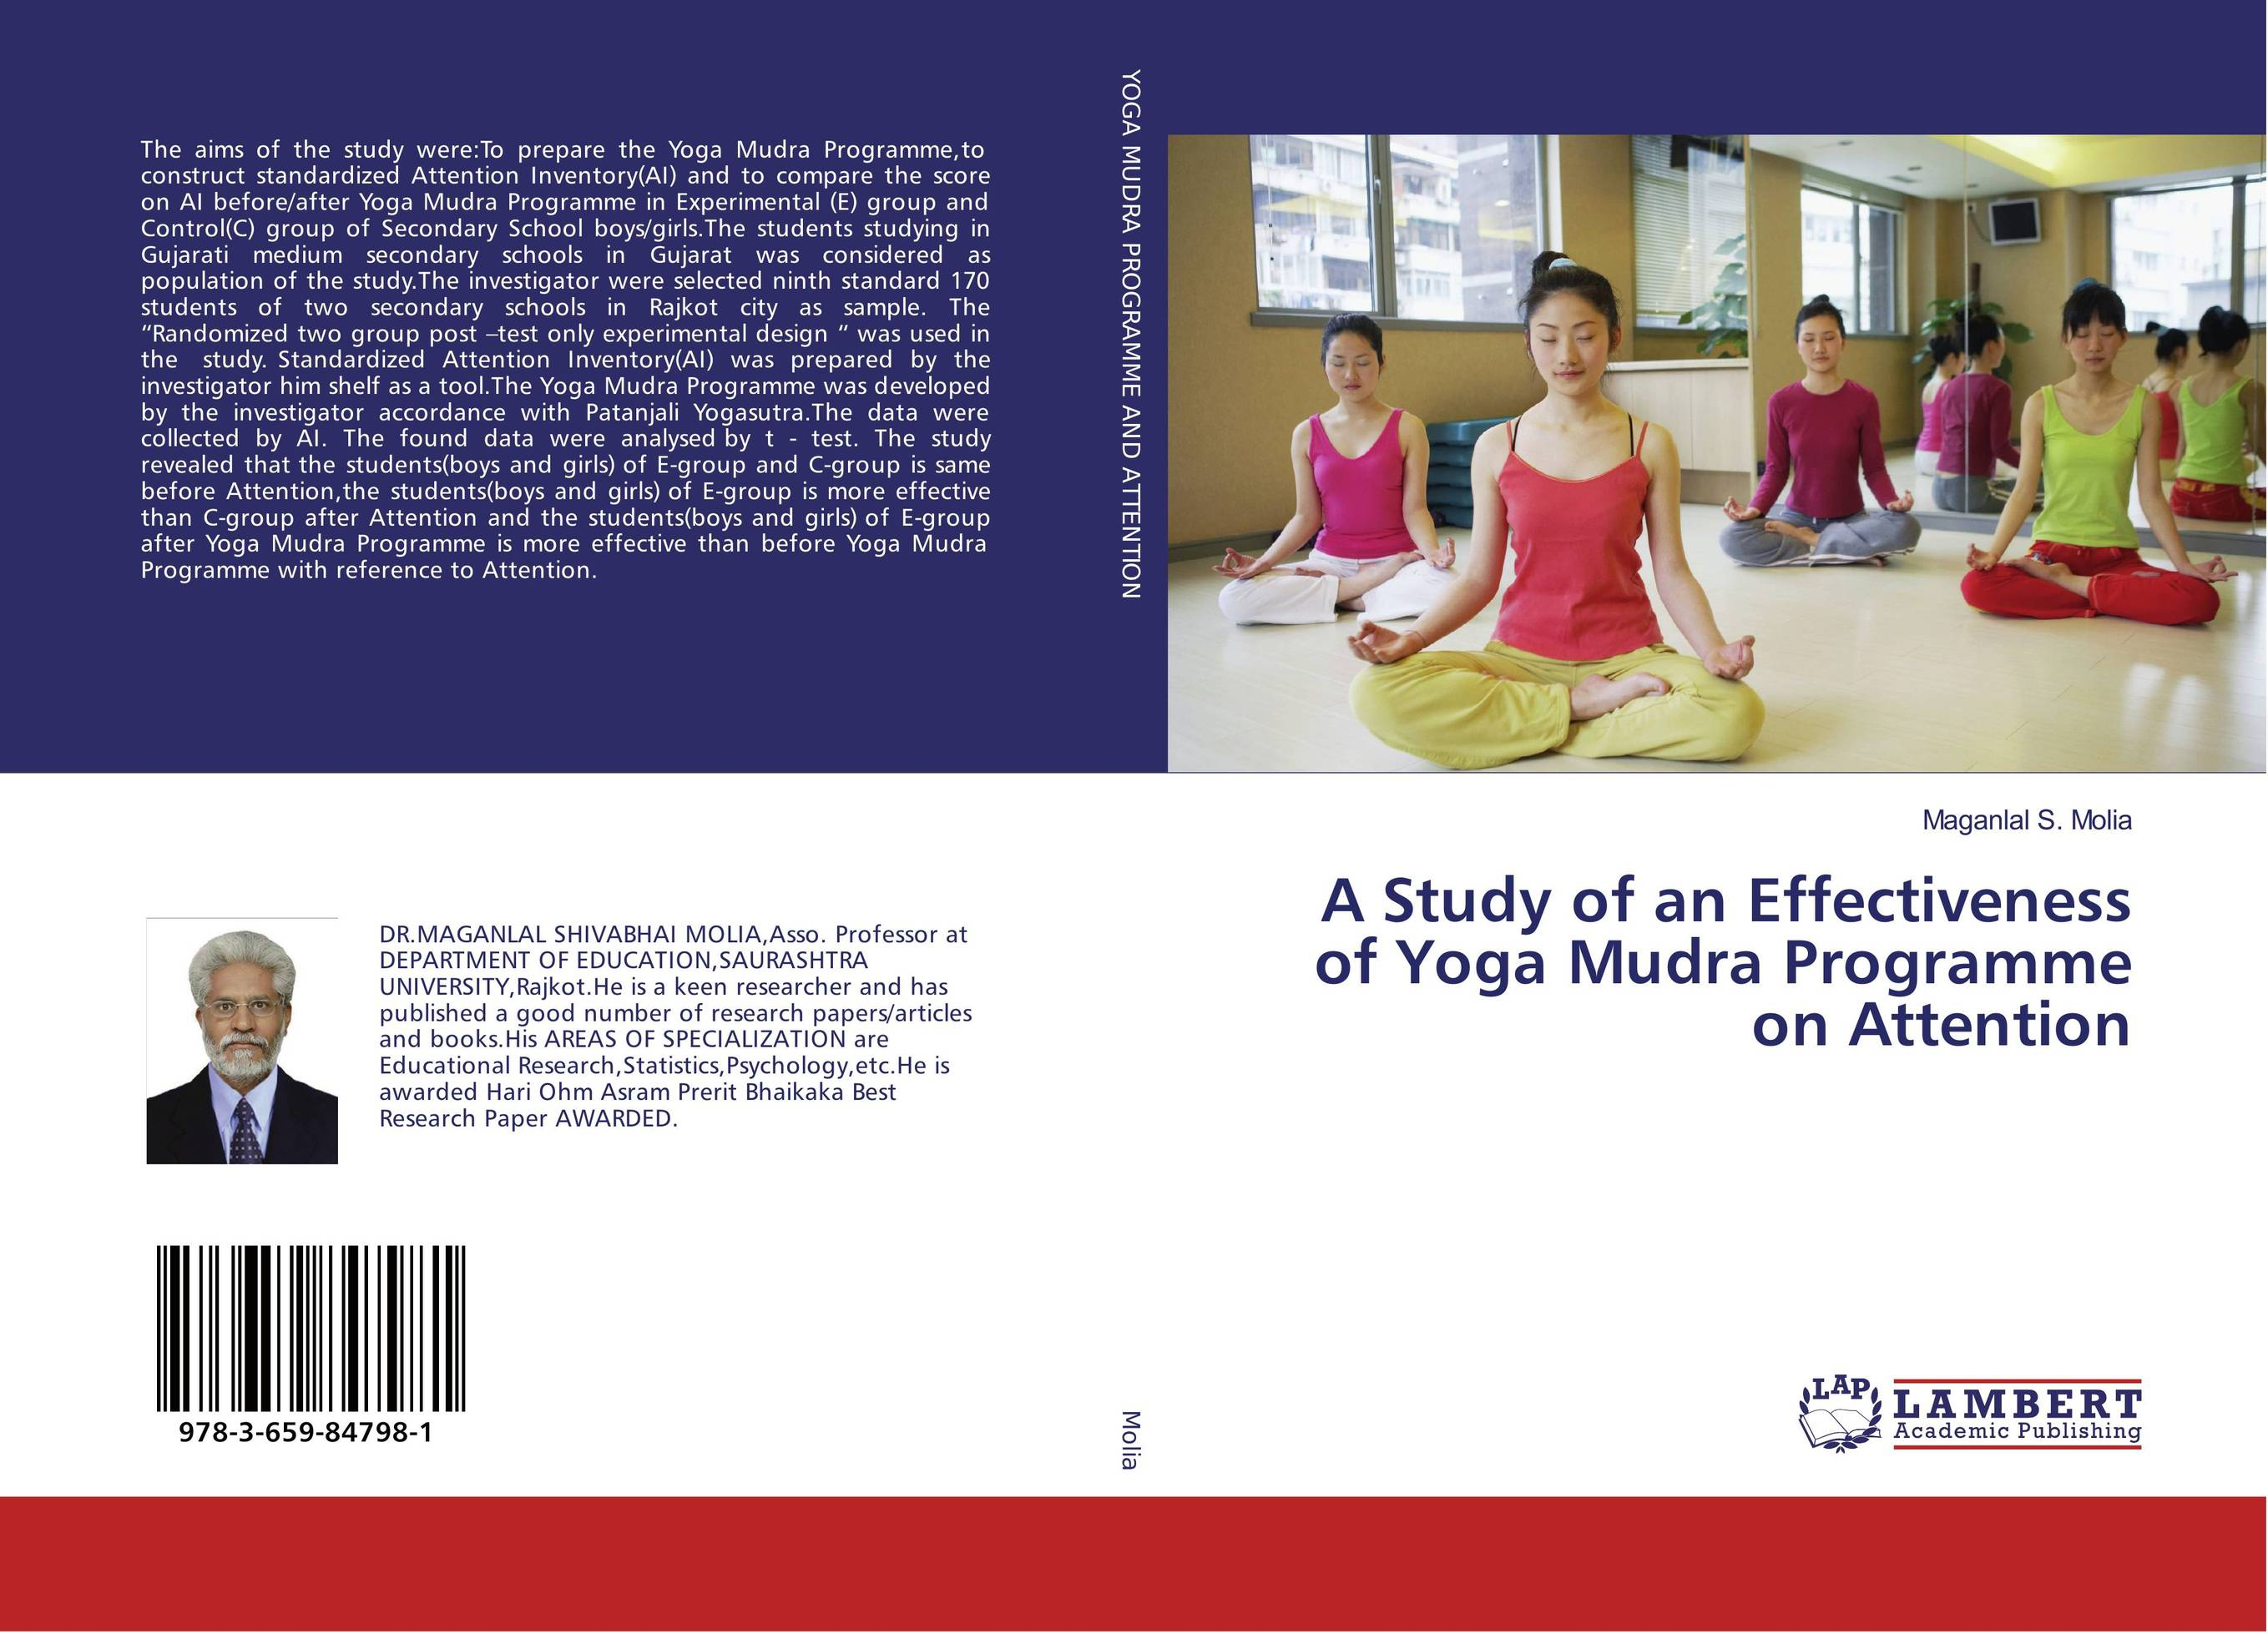 A Study of an Effectiveness of Yoga Mudra Programme on Attention i manev social capital and strategy effectiveness an empirical study of entrepreneurial ventures in a transition economy